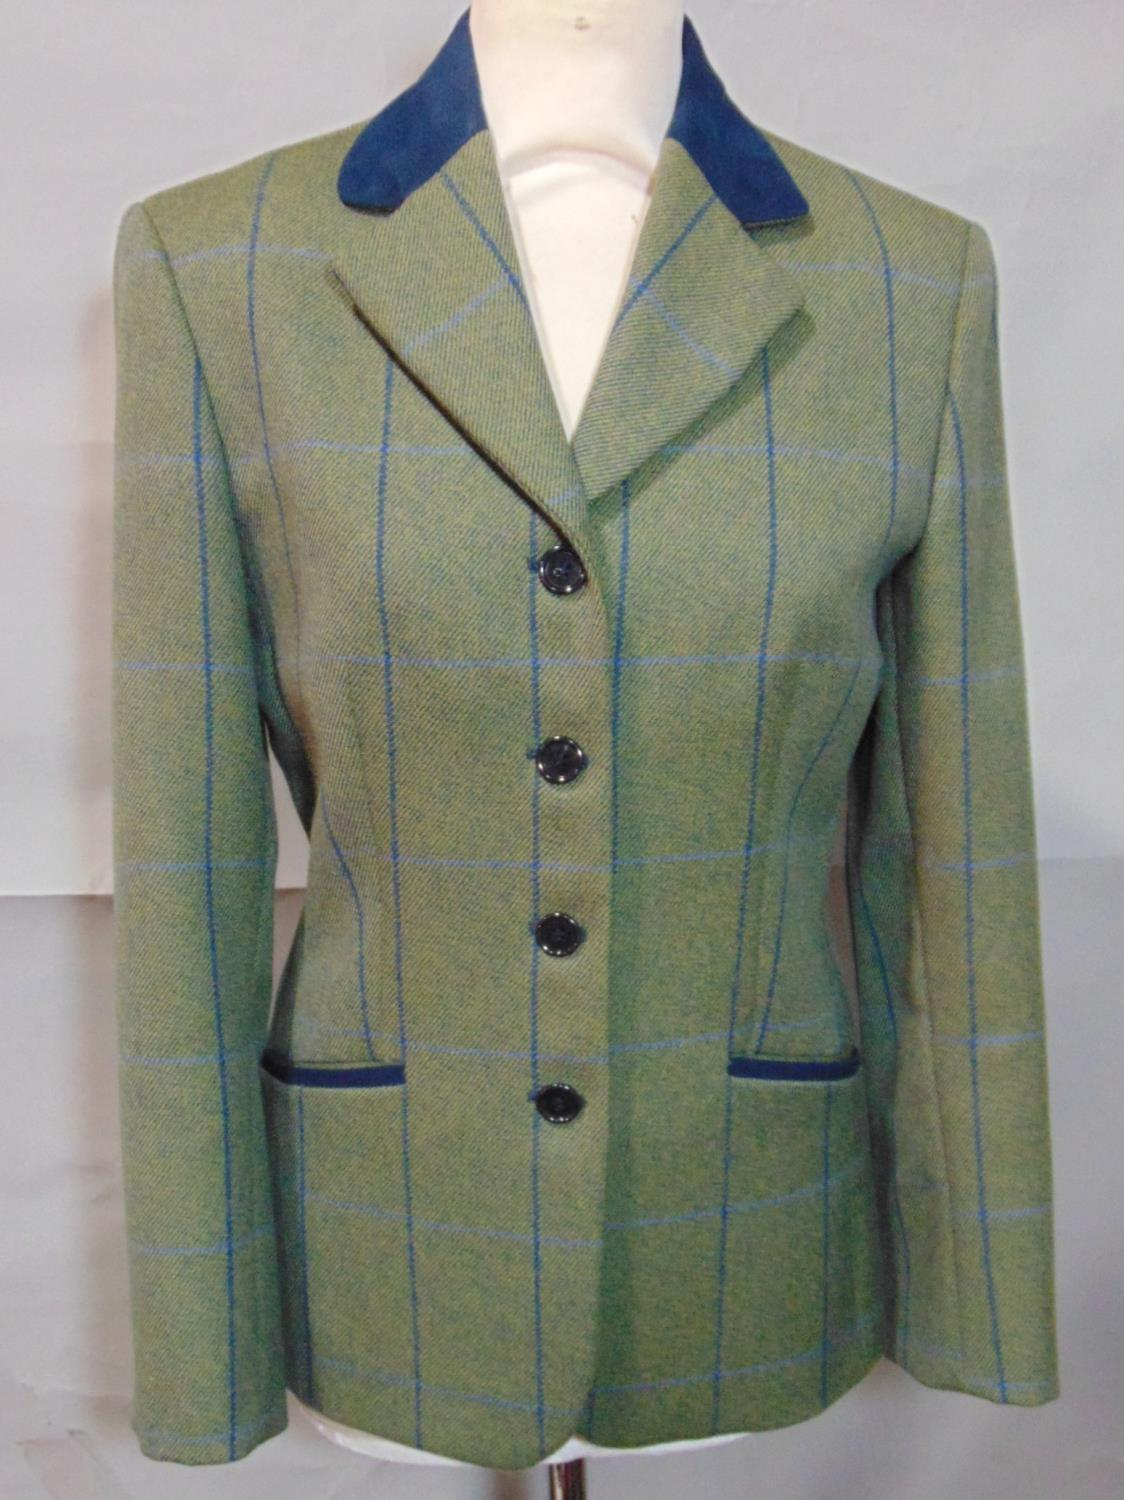 2 vintage ladies jackets including a short jacket by Cousins of Cheltenham in green woollen tweed - Image 3 of 6